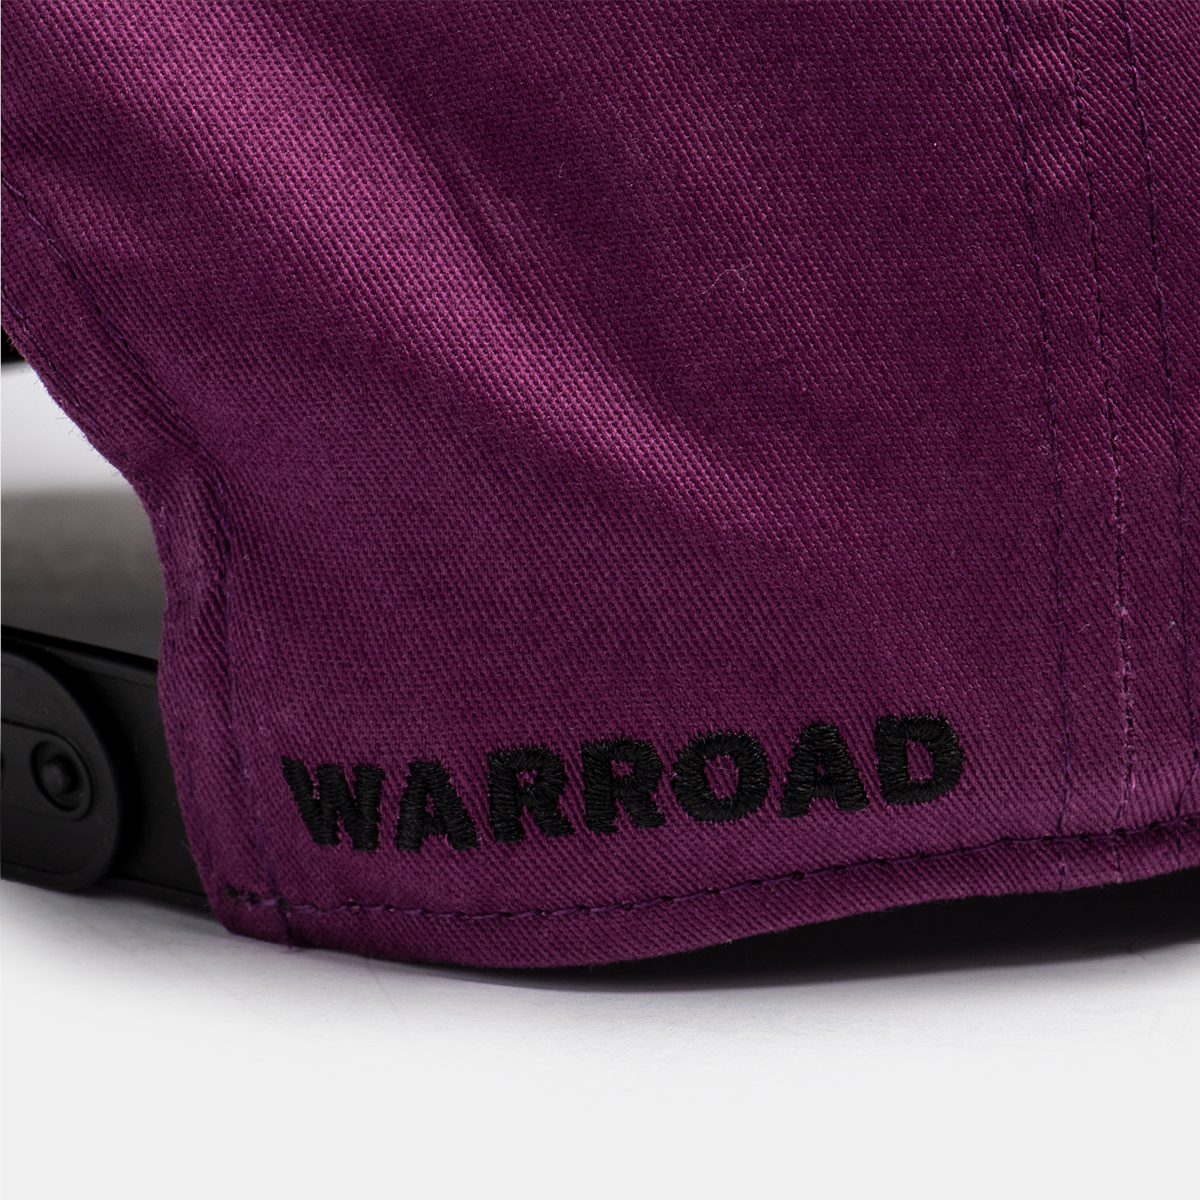 Warroad Player Collection Cap - Maroon